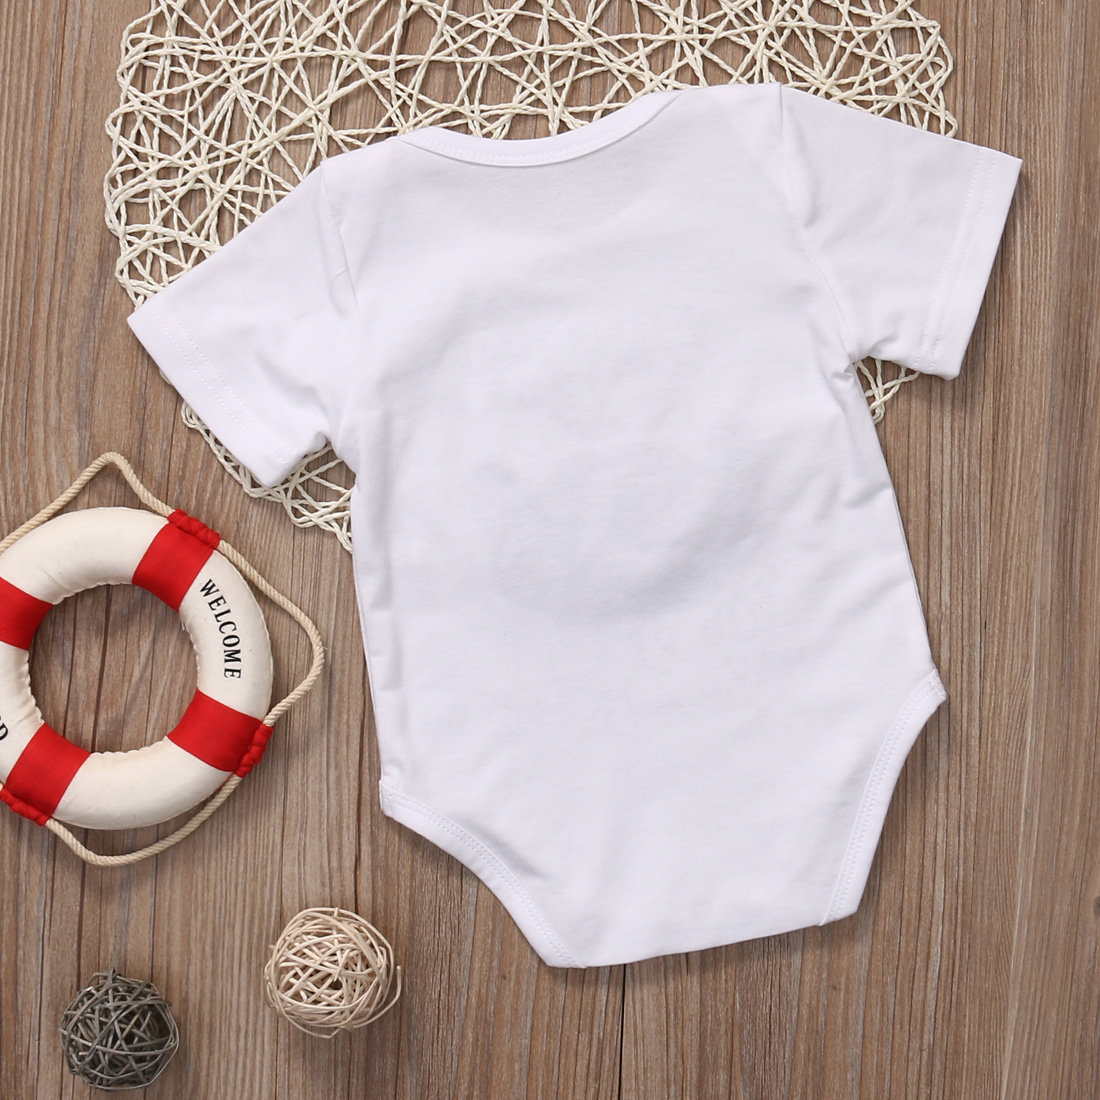 0b3640b5a Funny Cotton Clothes Newborn Baby Girls Boys Printed Short Sleeves ...